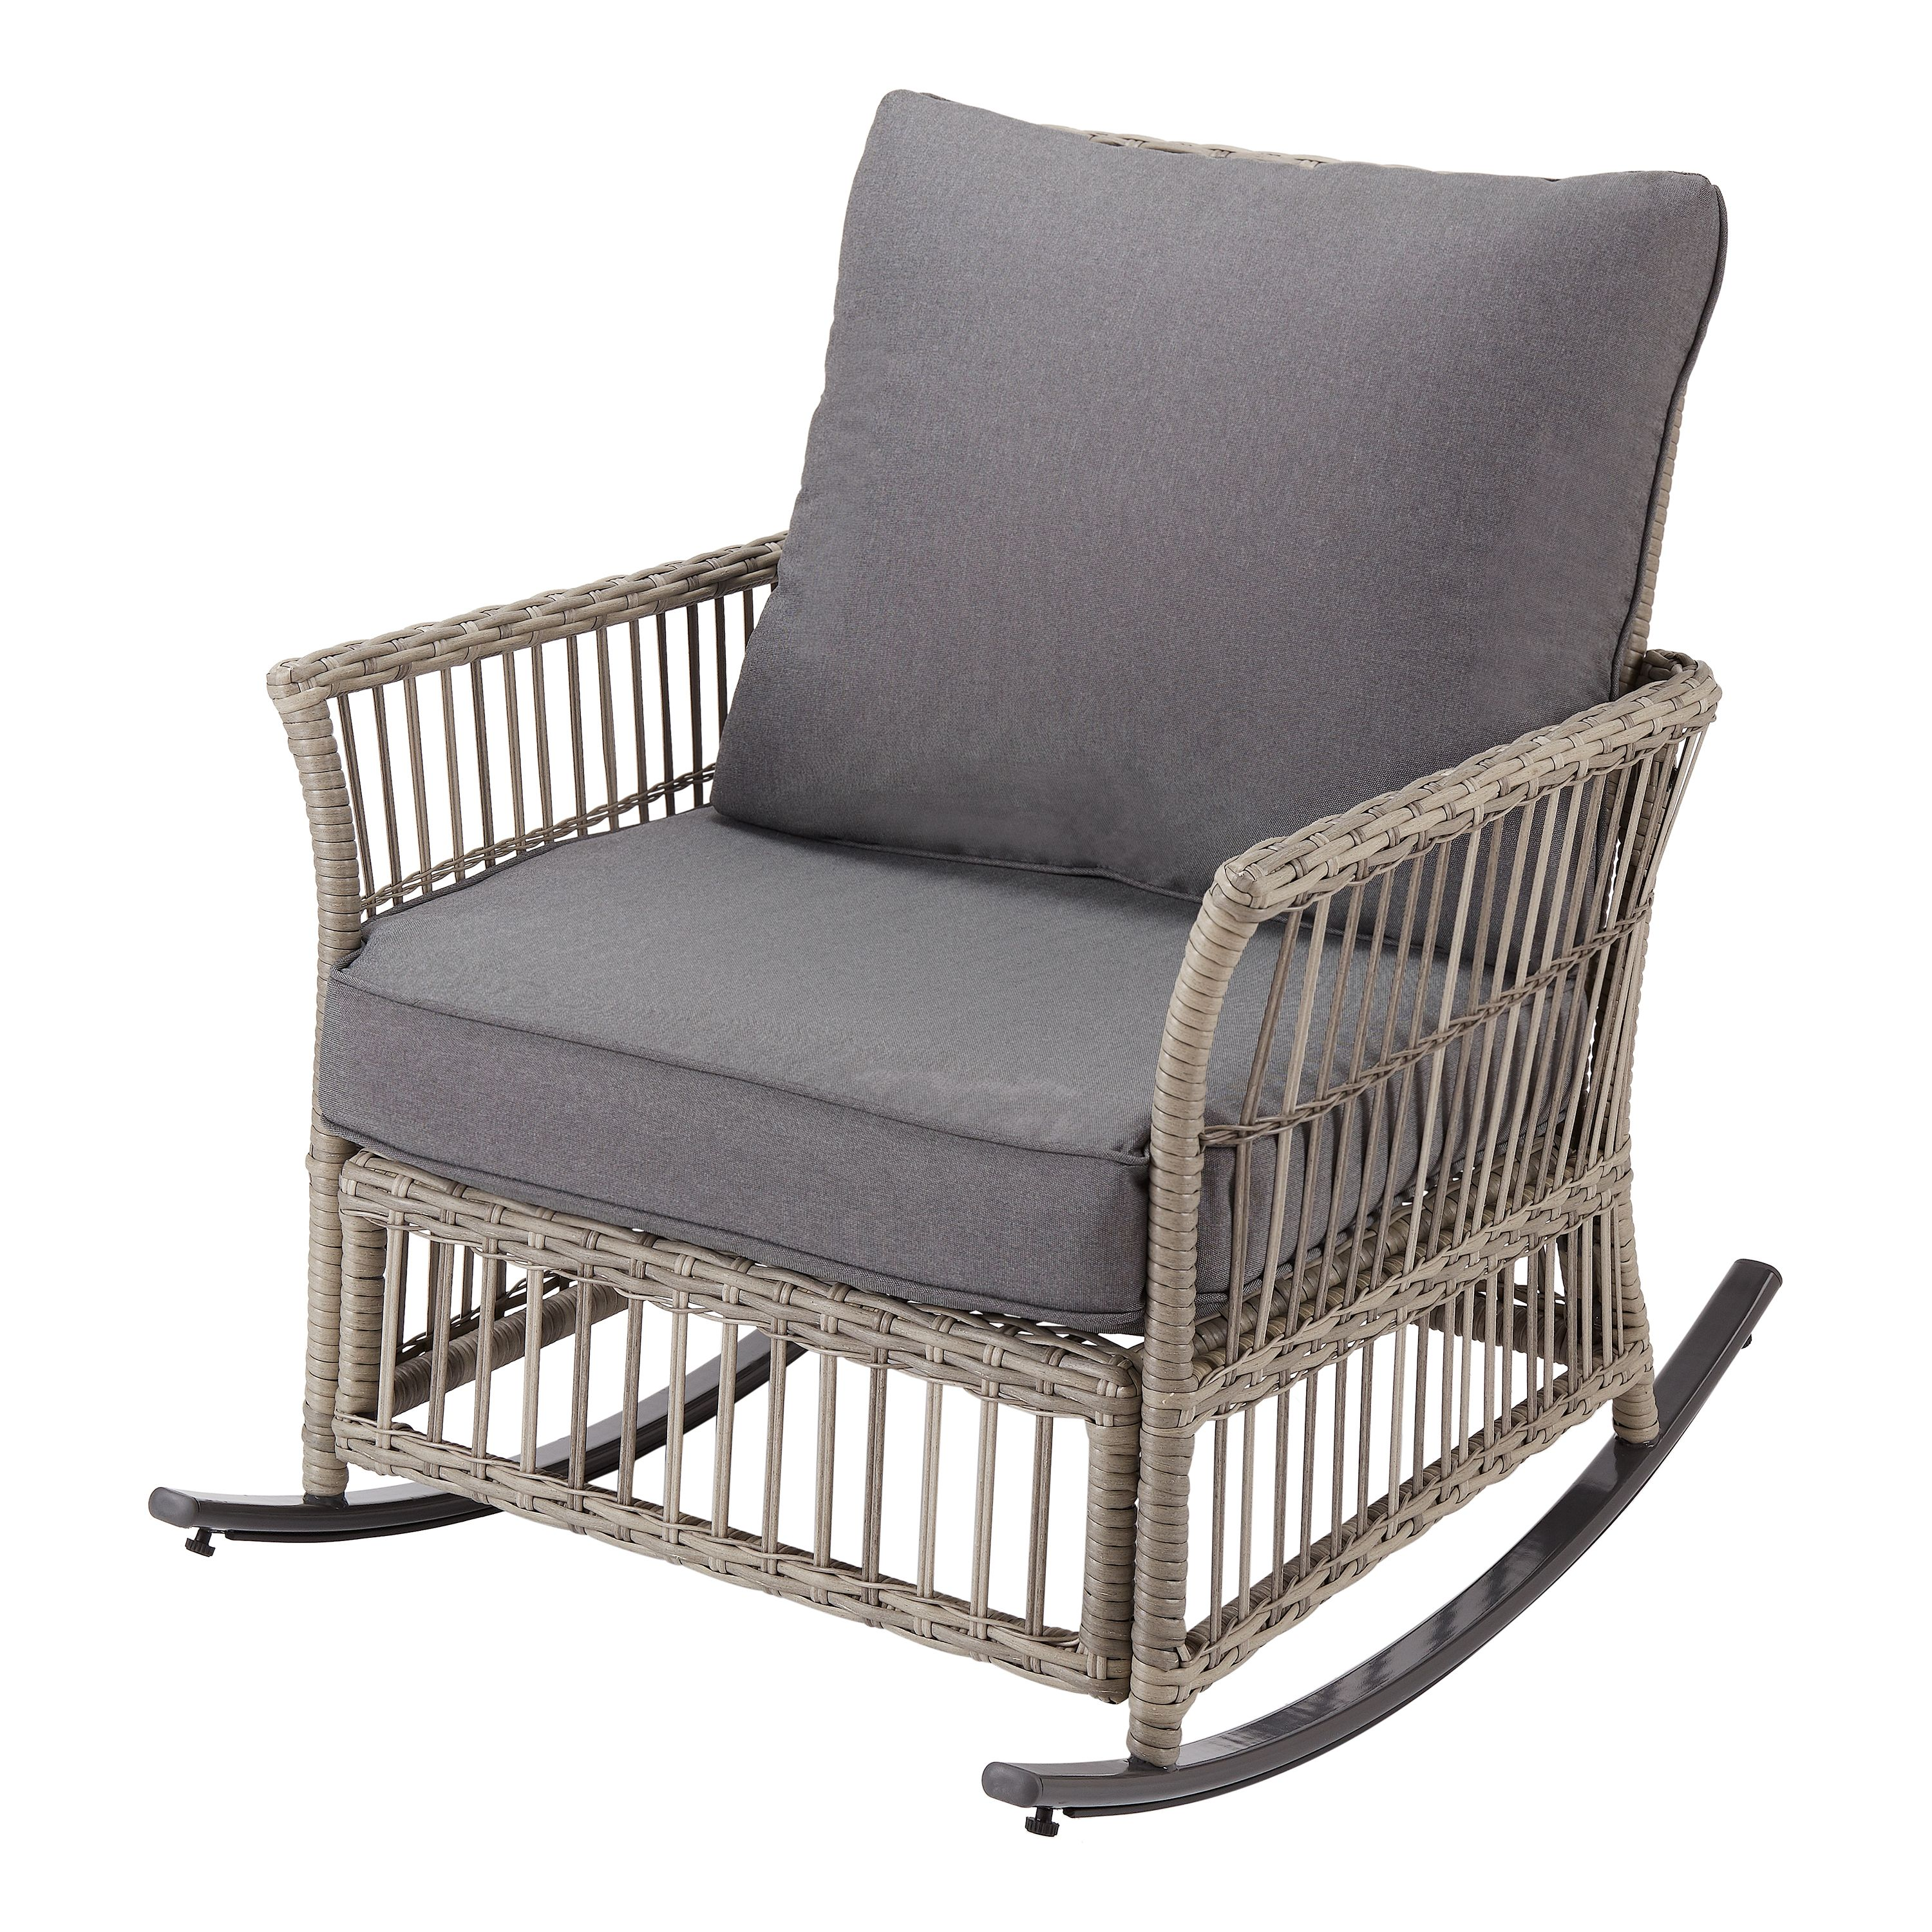 Better Homes & Gardens Belfair Patio Wicker Rocking Chair with Gray Cushions